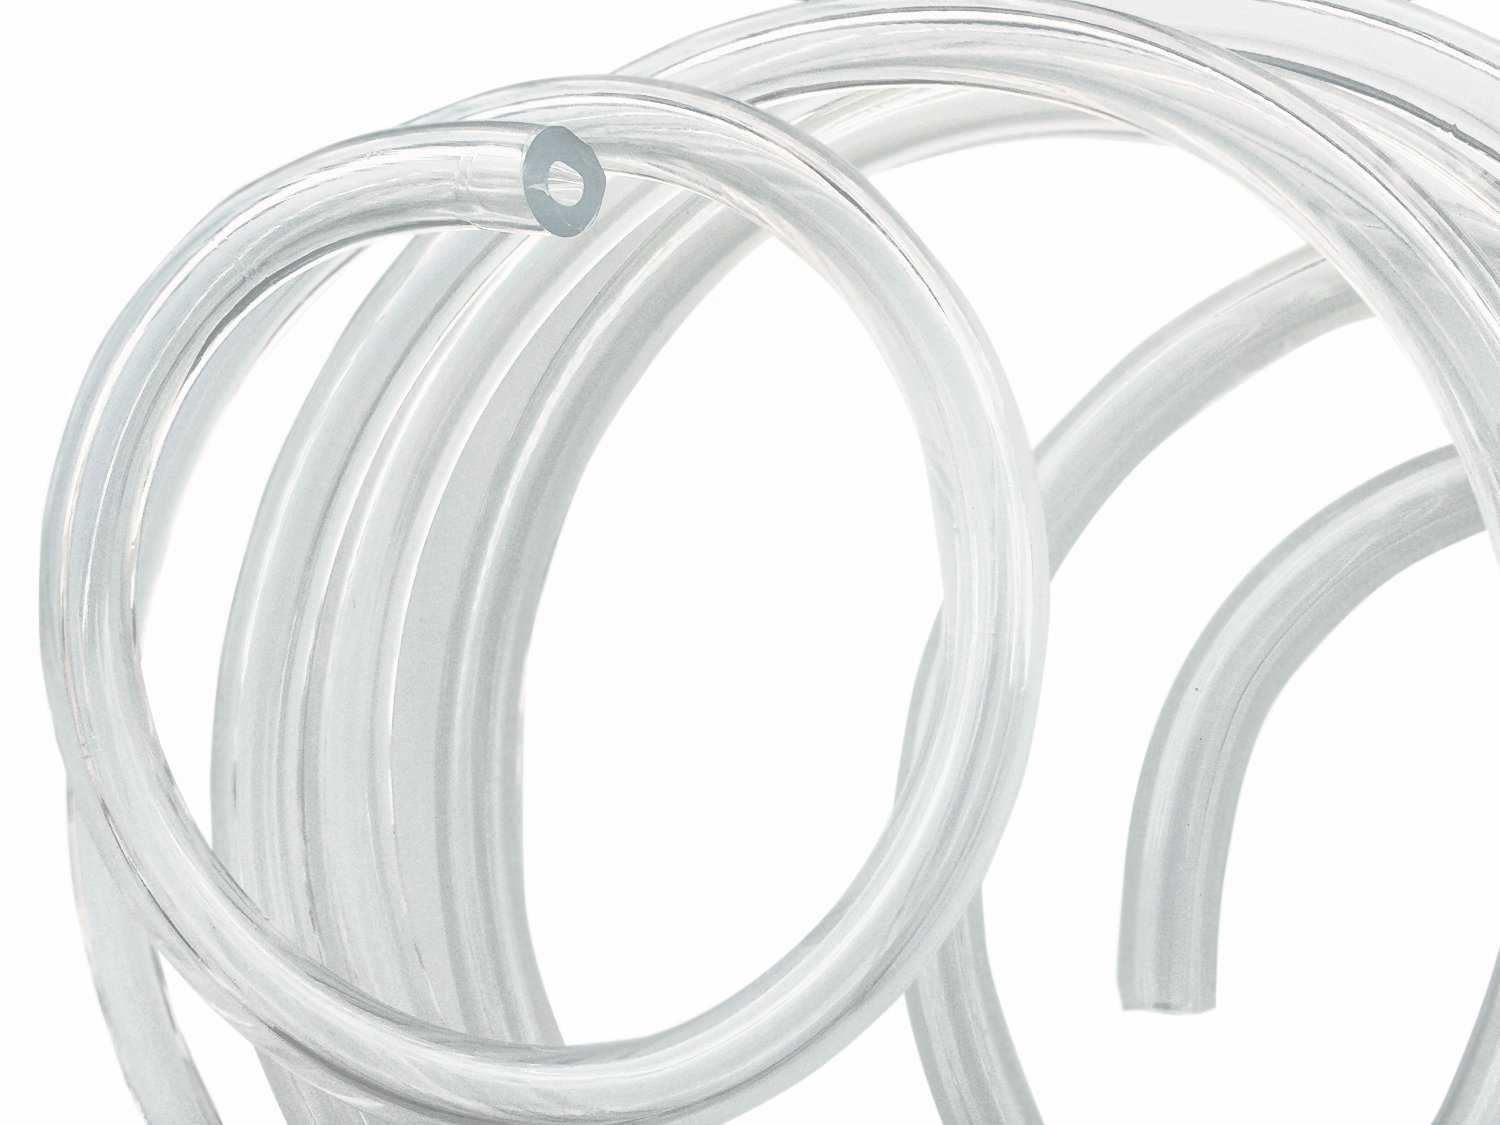 "50 Feet - 3/16"" ID 7/16"" OD Clear Vinyl Tubing FDA Approved Food Grade Multipurpose Tube for Beer Line, Kegerator, Wine Making, Aquaponics, Air Hose by Proper Pour"